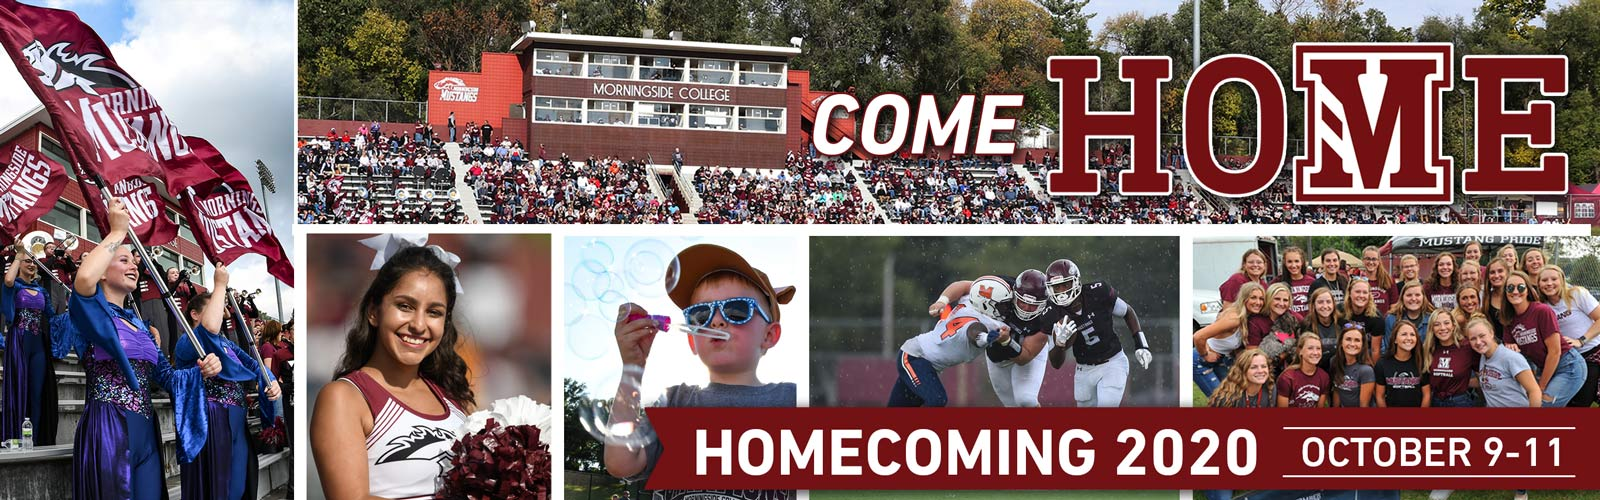 morningside college homecoming banner 2020